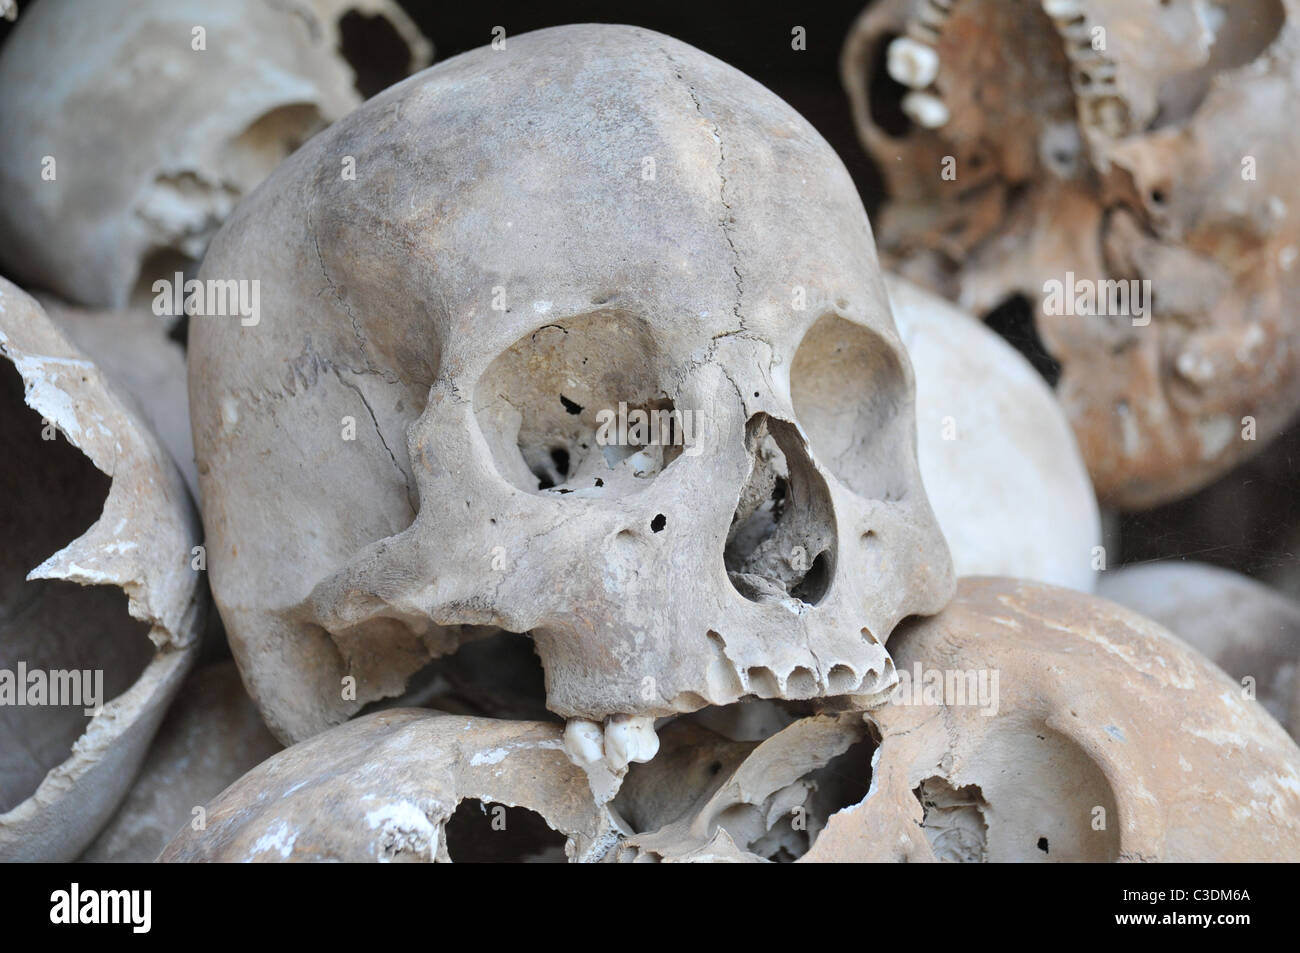 The Skulls from the killing fields in Cambodia - Stock Image